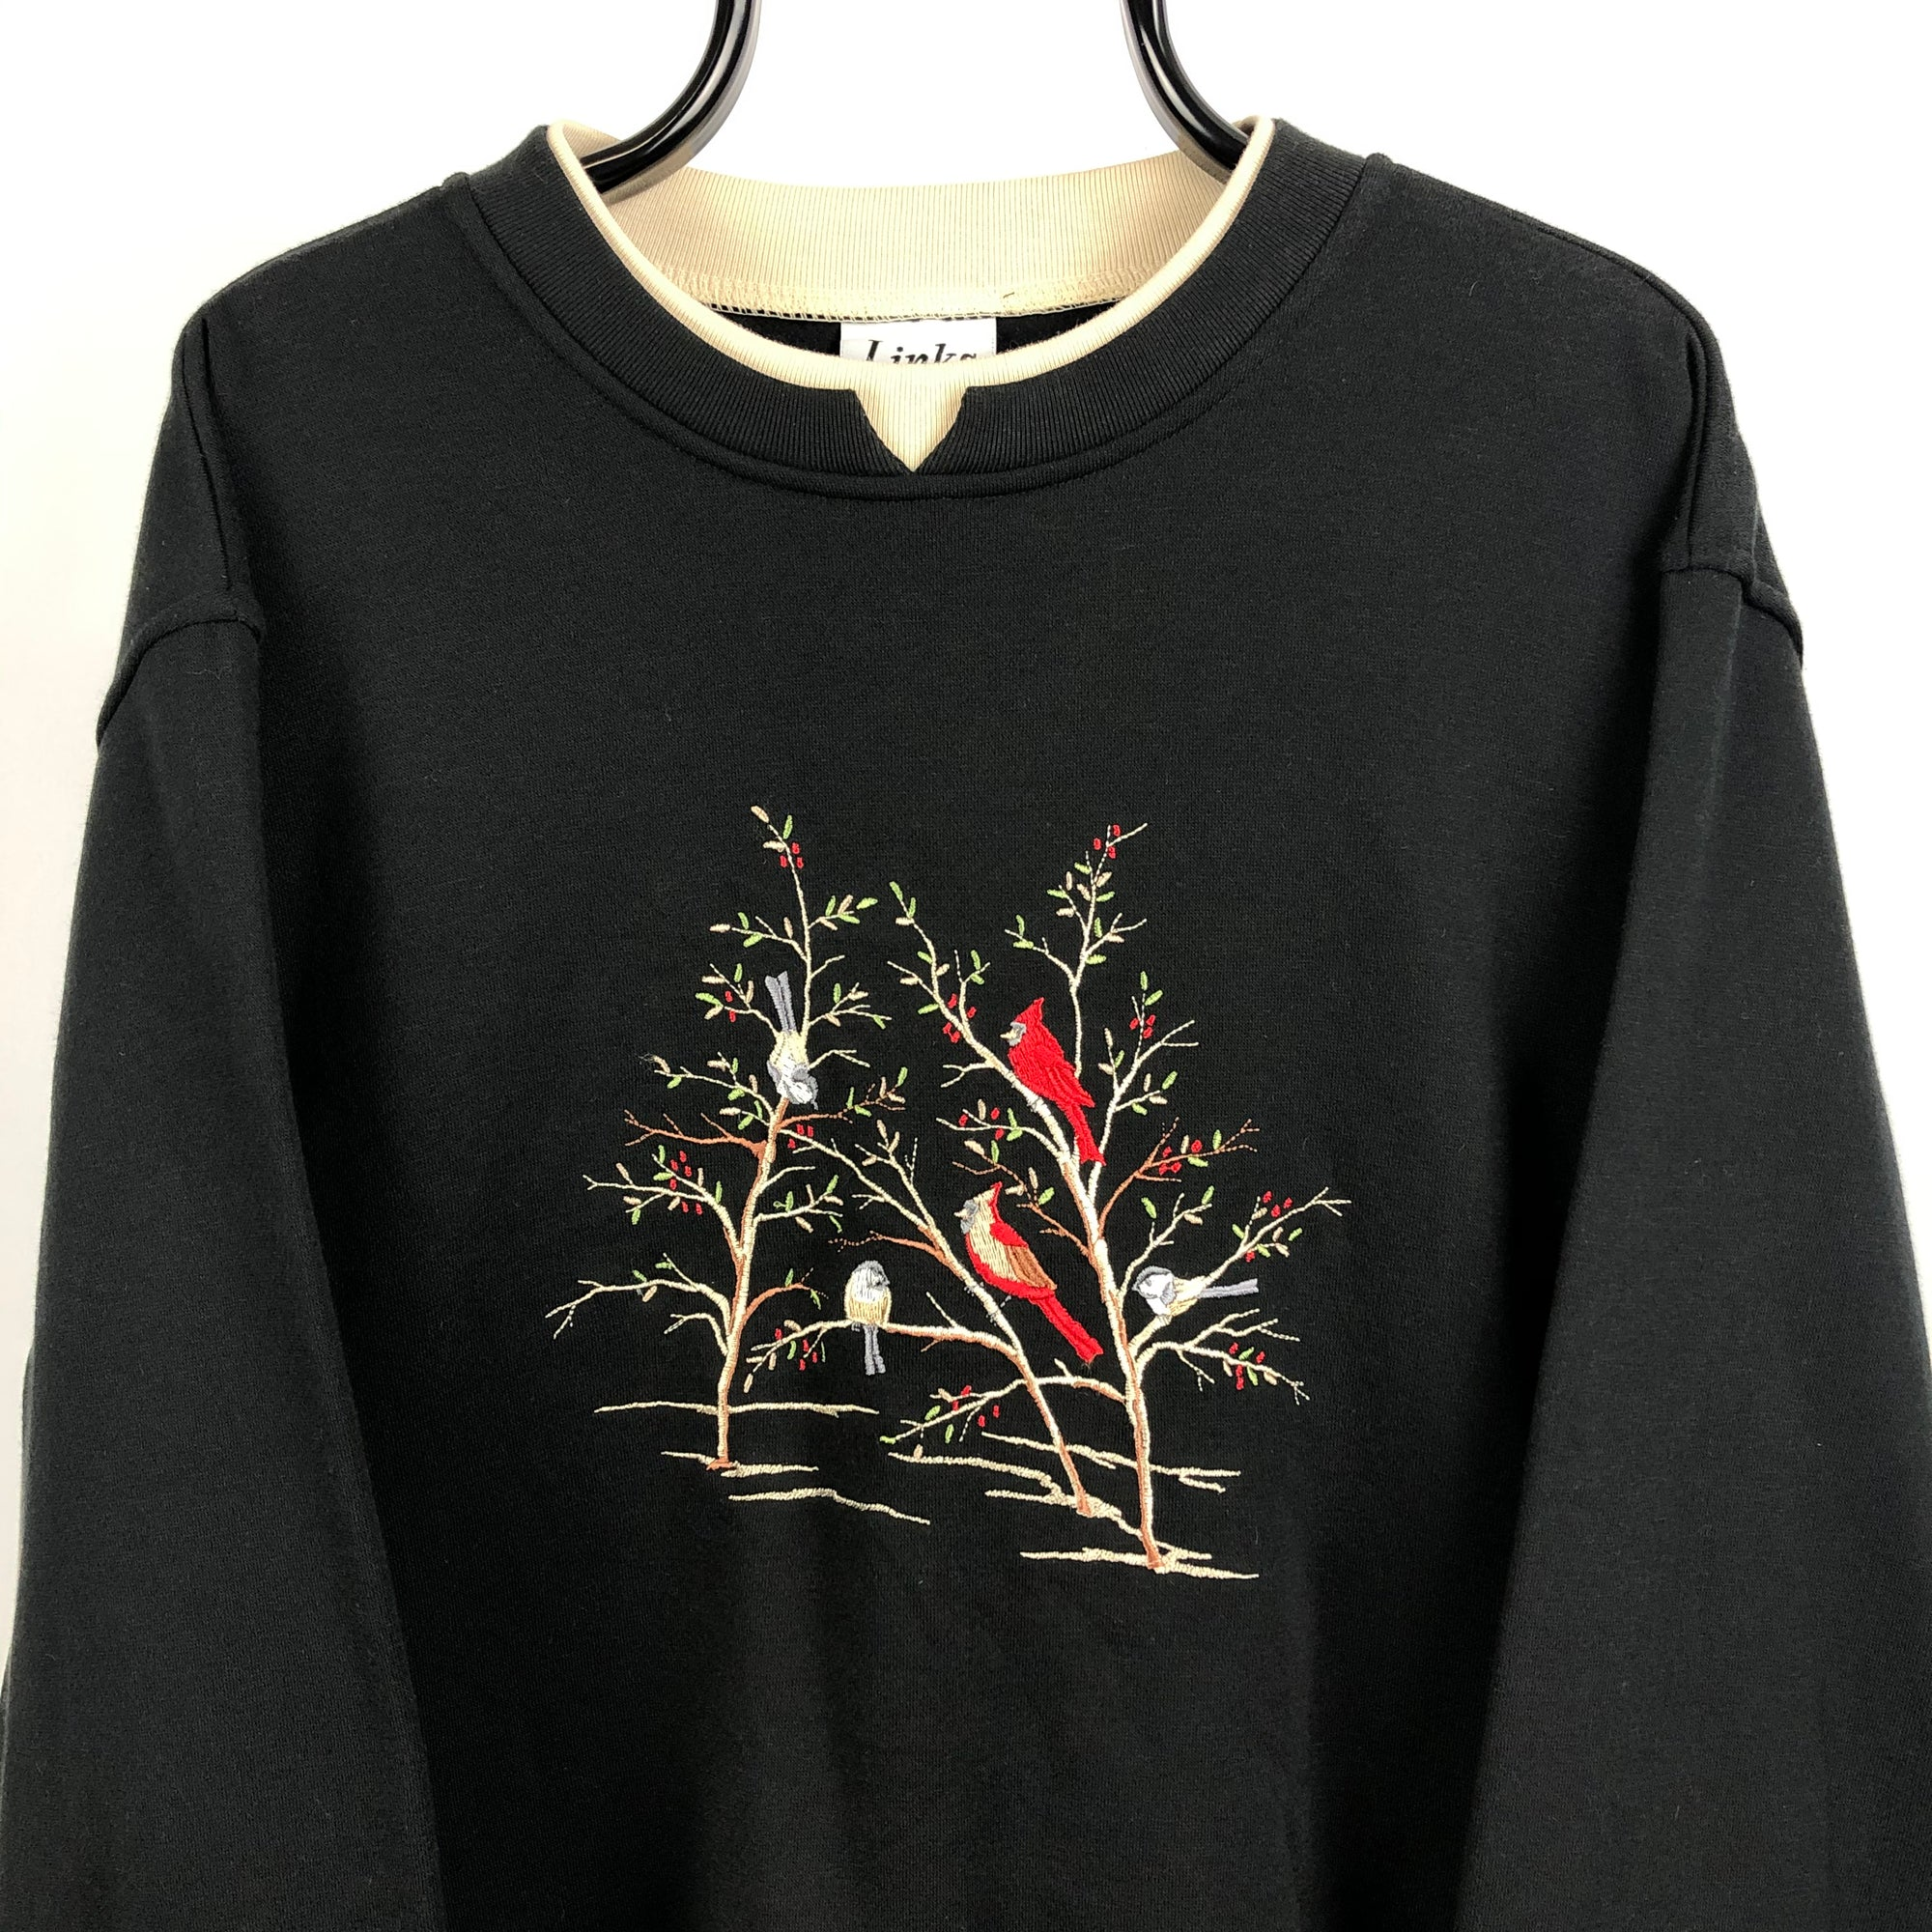 Vintage 90s Birds Embroidery Sweatshirt in Black - Men's XXL/Women's XXXL